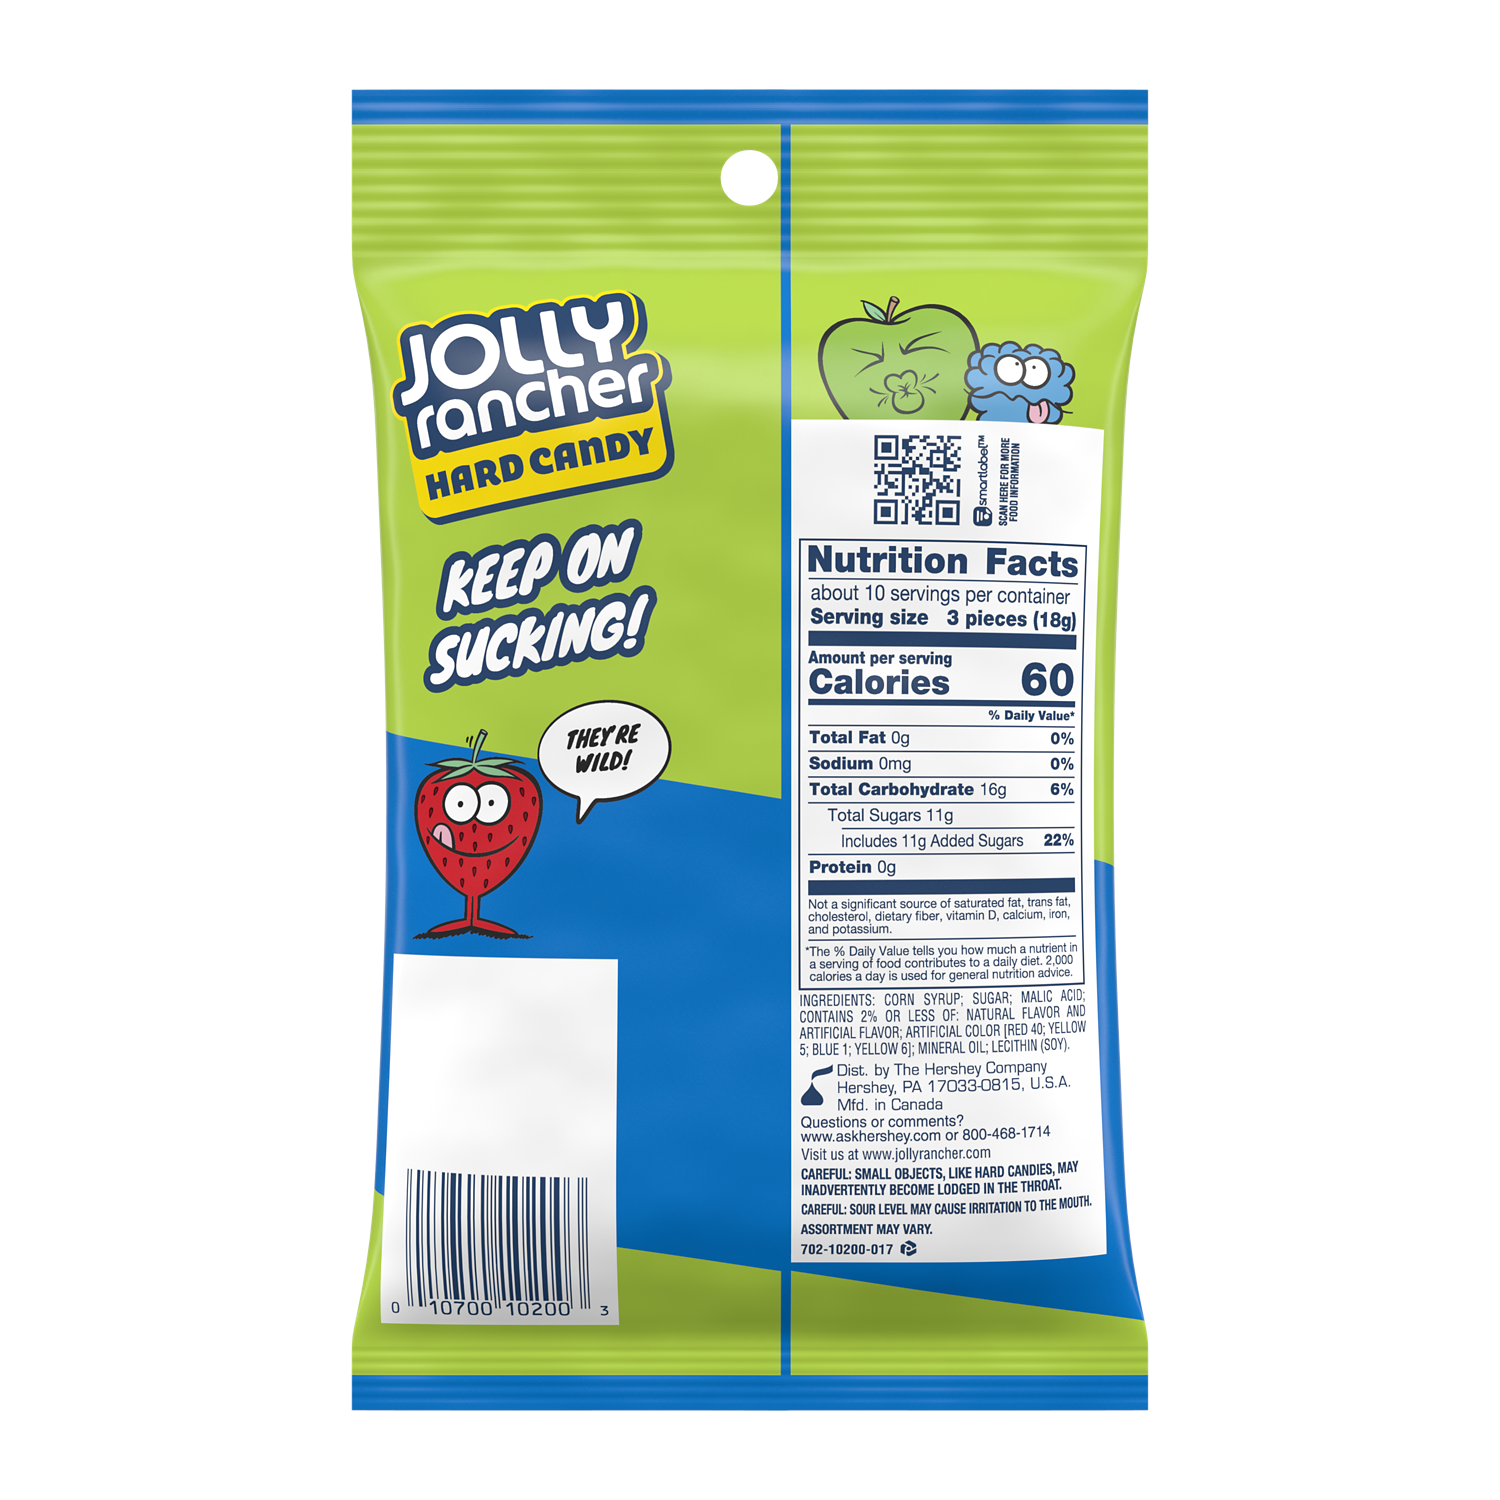 JOLLY RANCHER Fruit 'N Sour Hard Candy, 6.5 oz bag - Back of Package